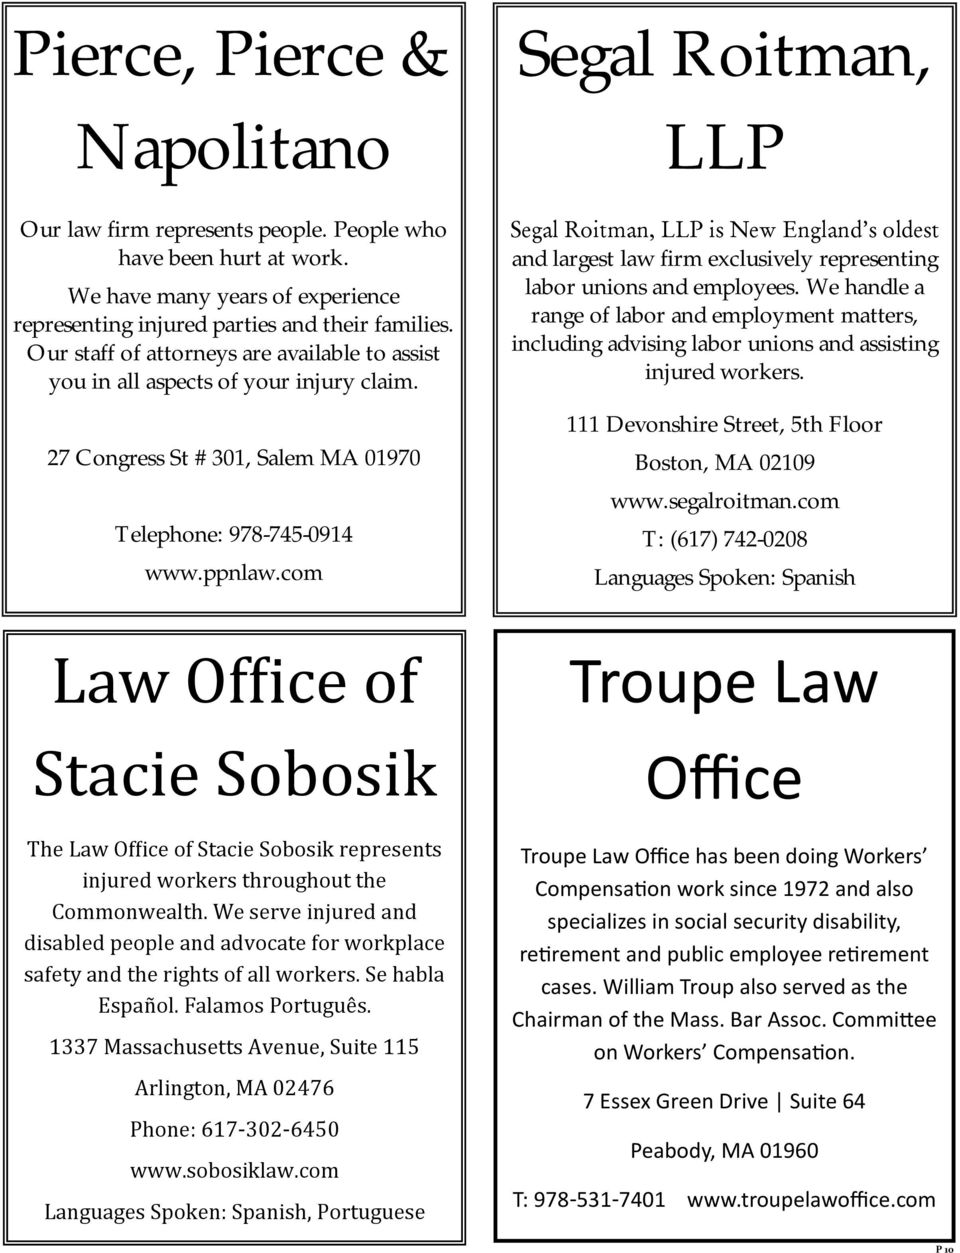 com Segal Roitman, LLP Segal Roitman, LLP is New England s oldest and largest law firm exclusively representing labor unions and employees.